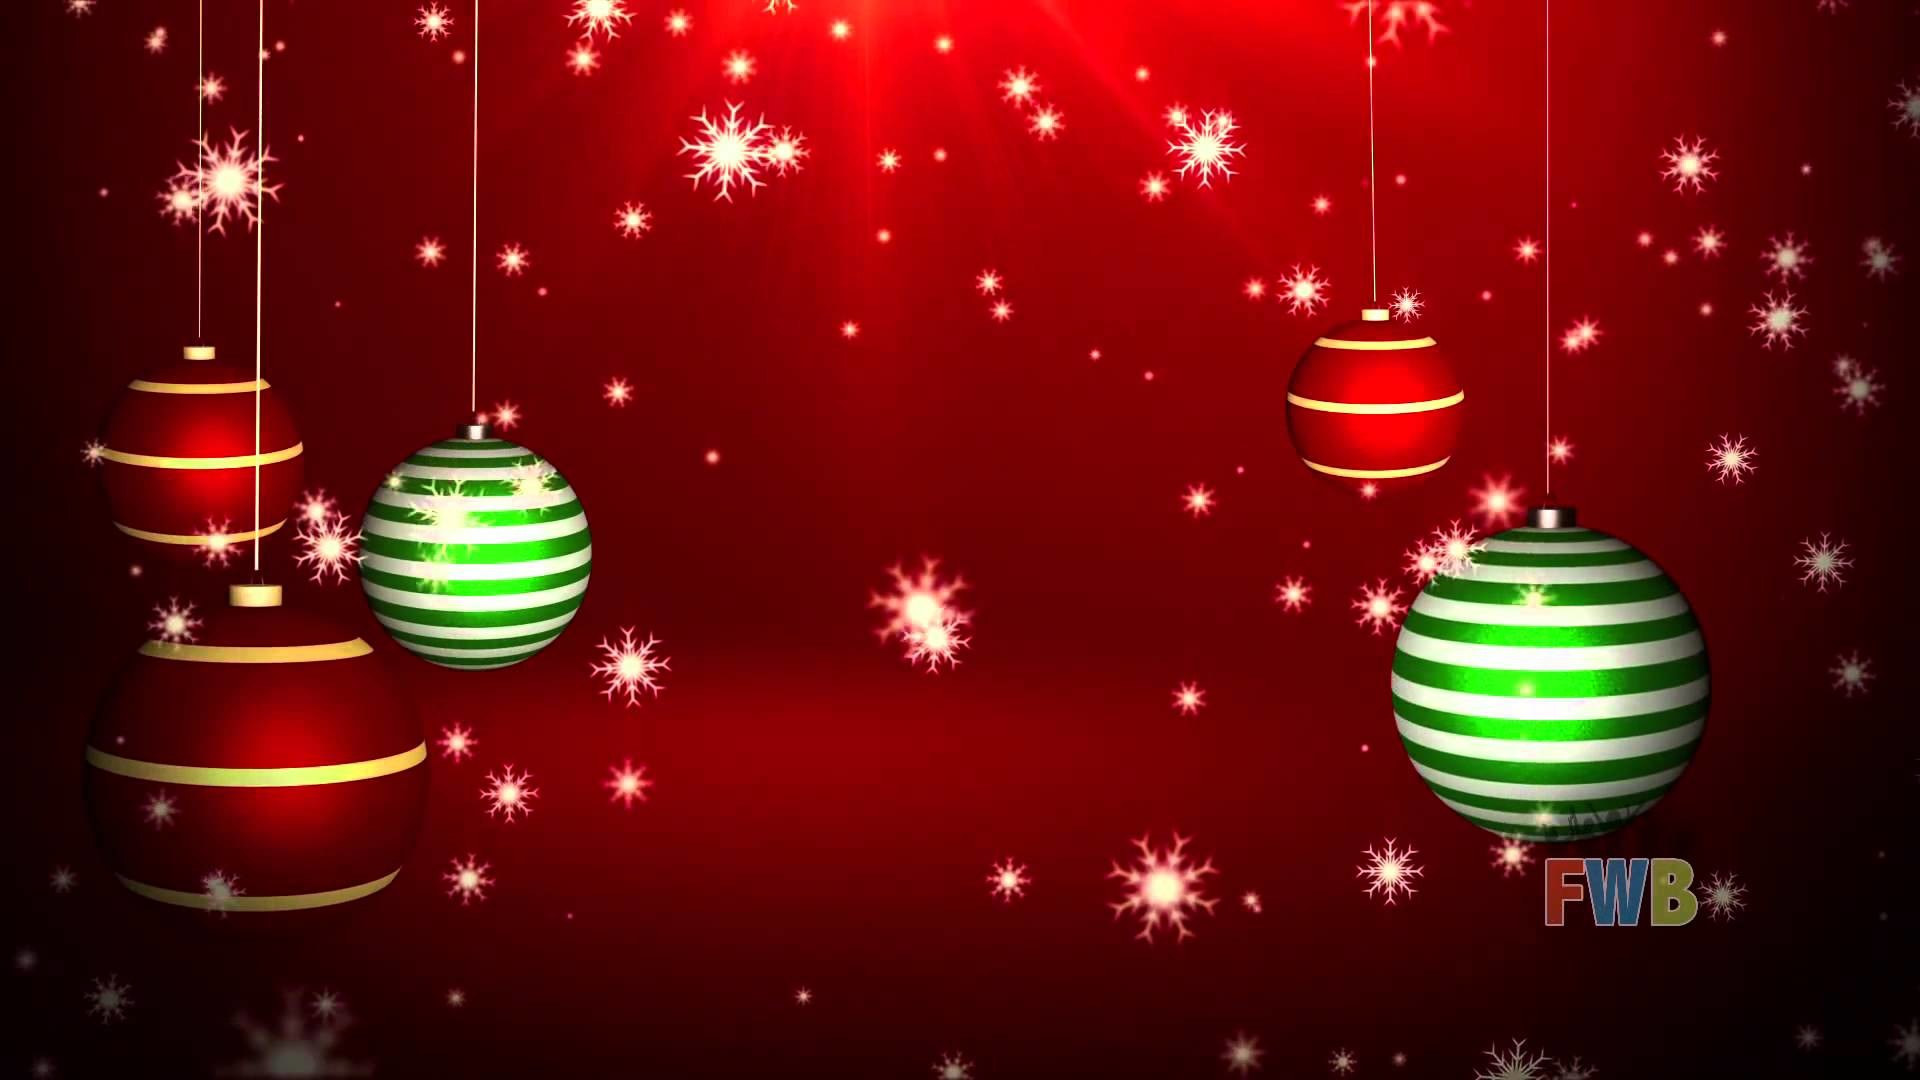 Christmas Background Images Hd.Christmas Backgrounds 62 Pictures